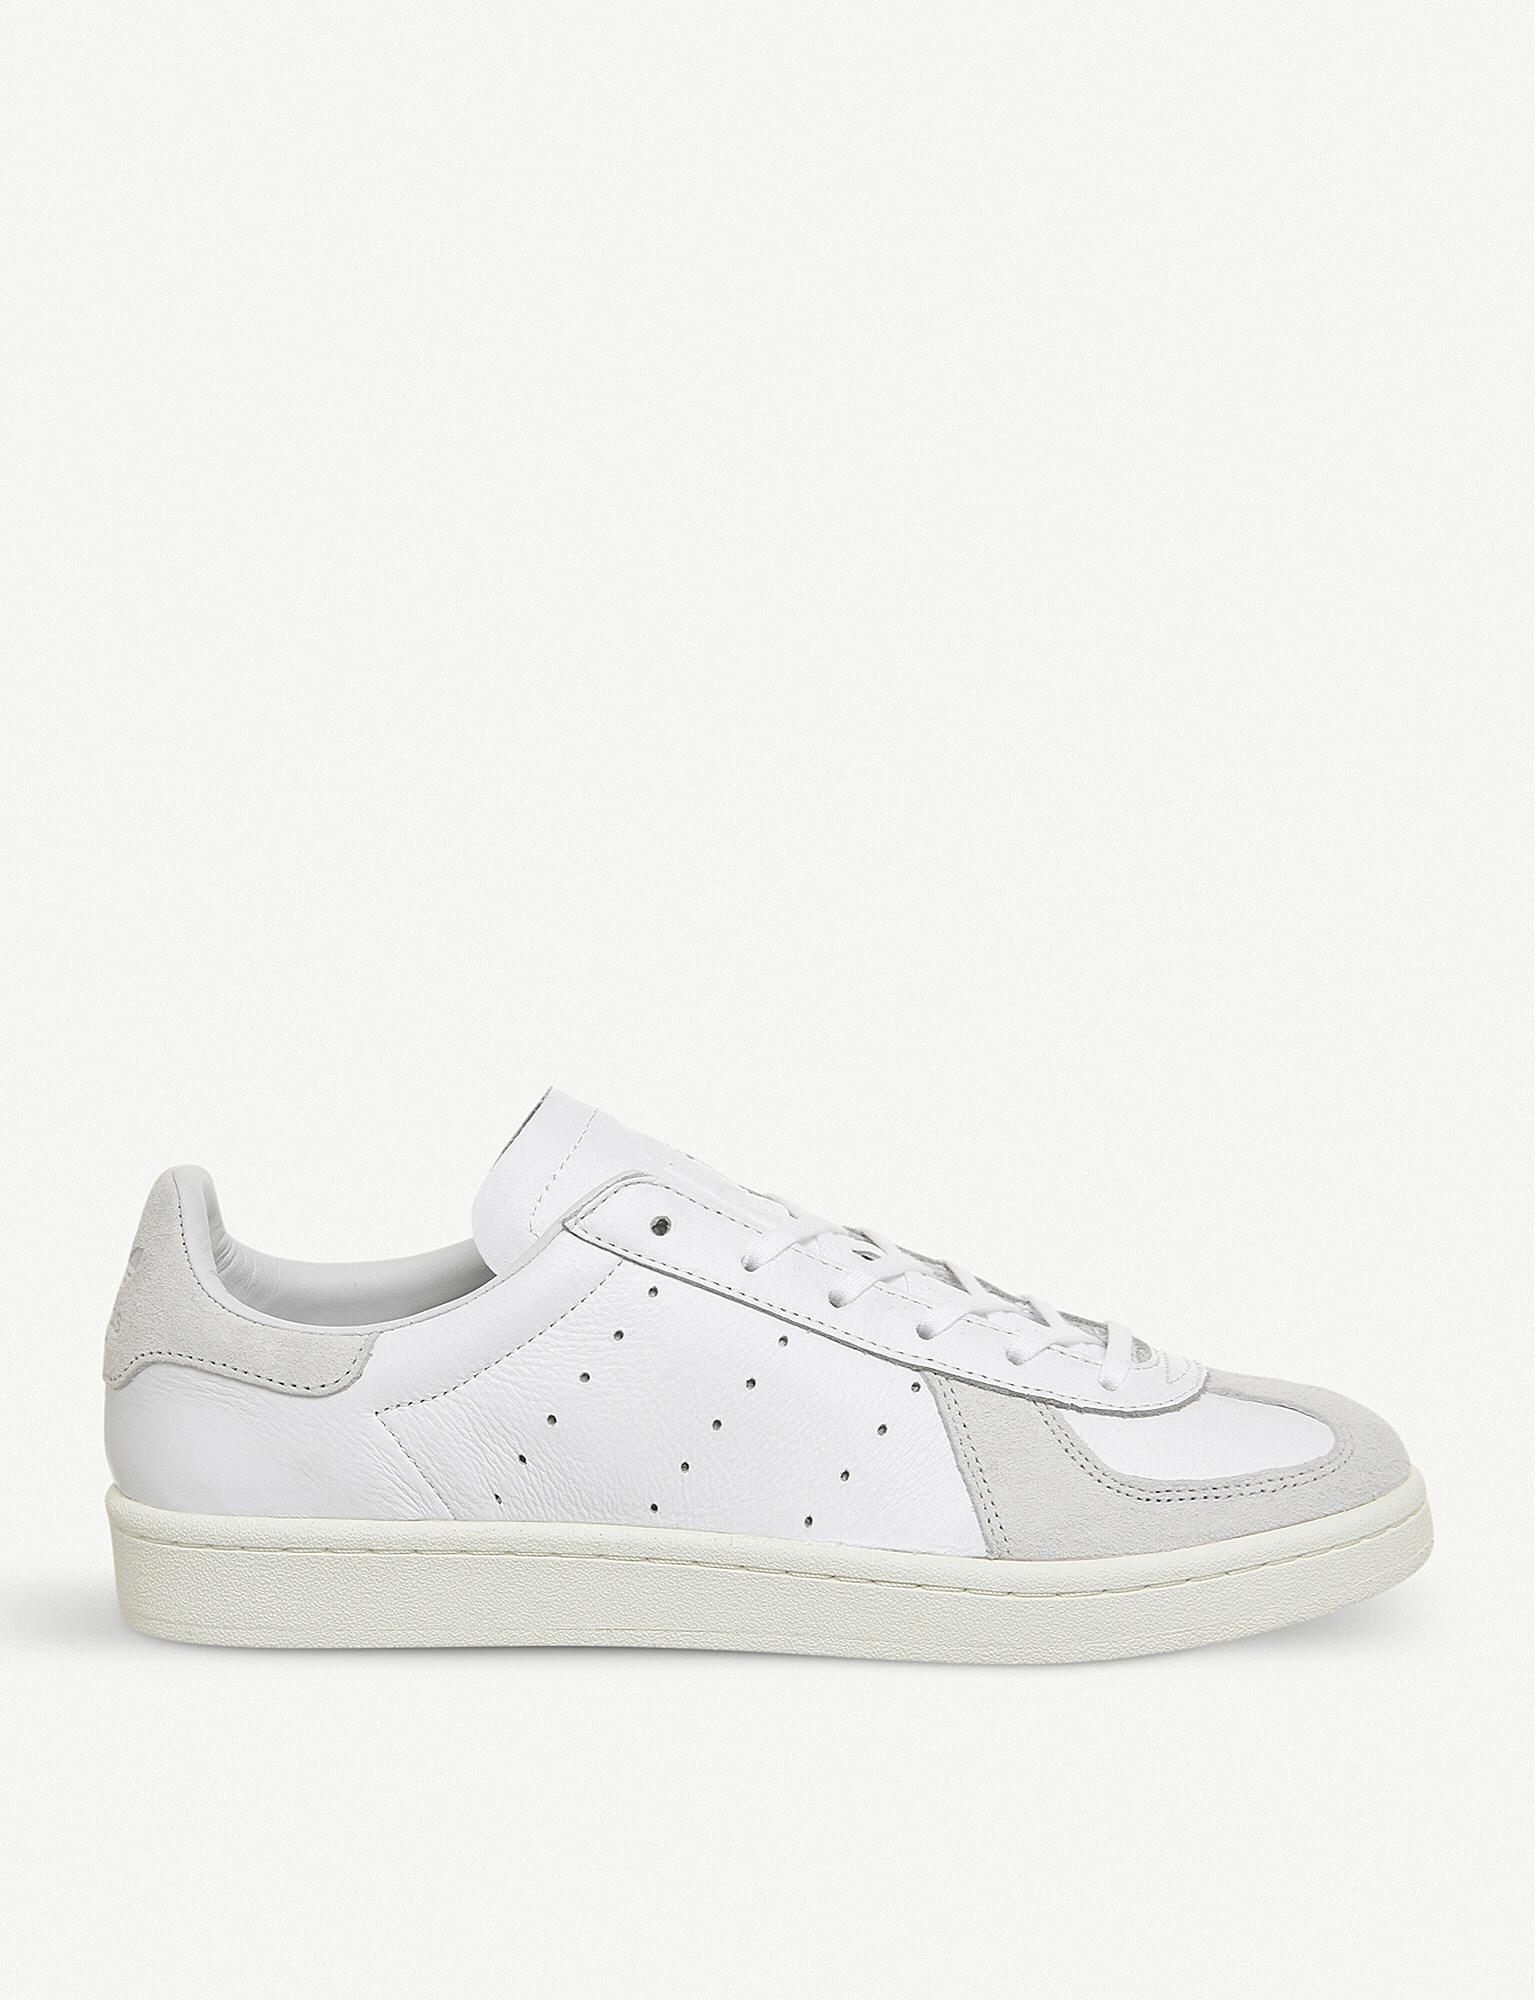 premium selection 22753 3b381 Adidas Bw Avenue Leather And Suede Trainers in White for Men